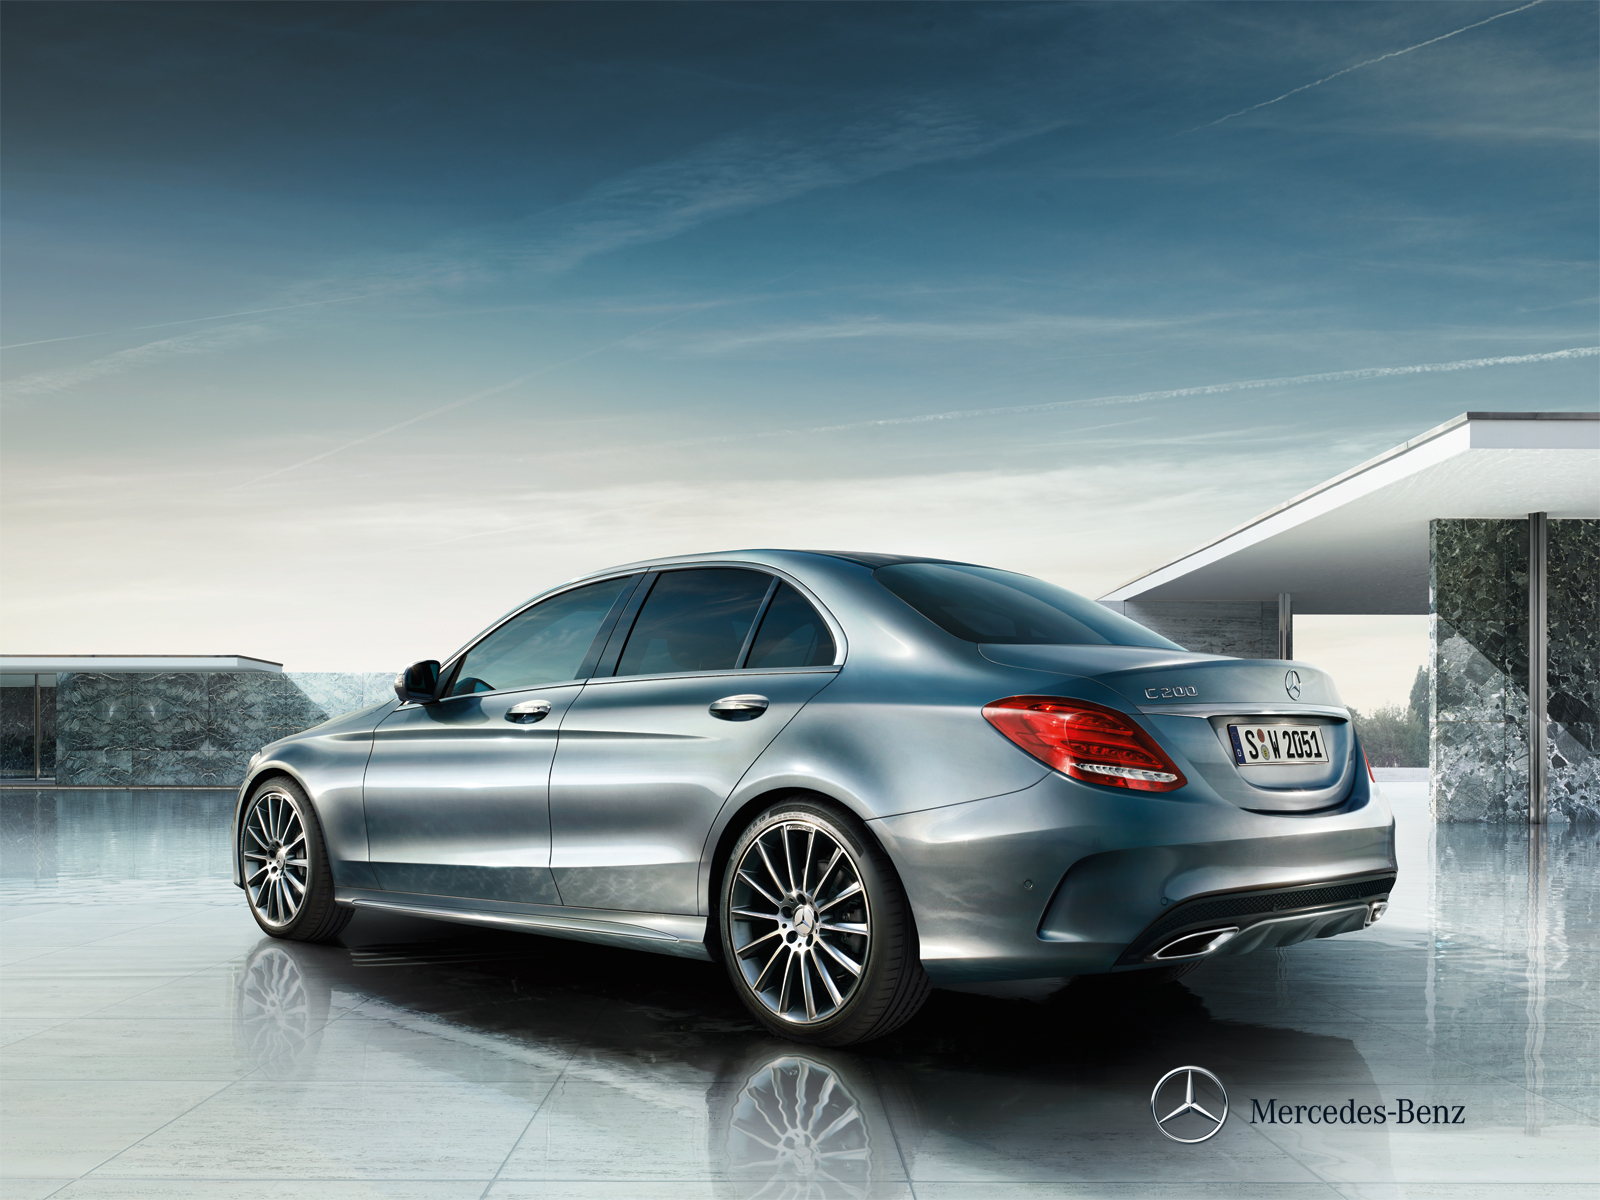 Mercedes will supply 120 C Class sedans to Carzonrent